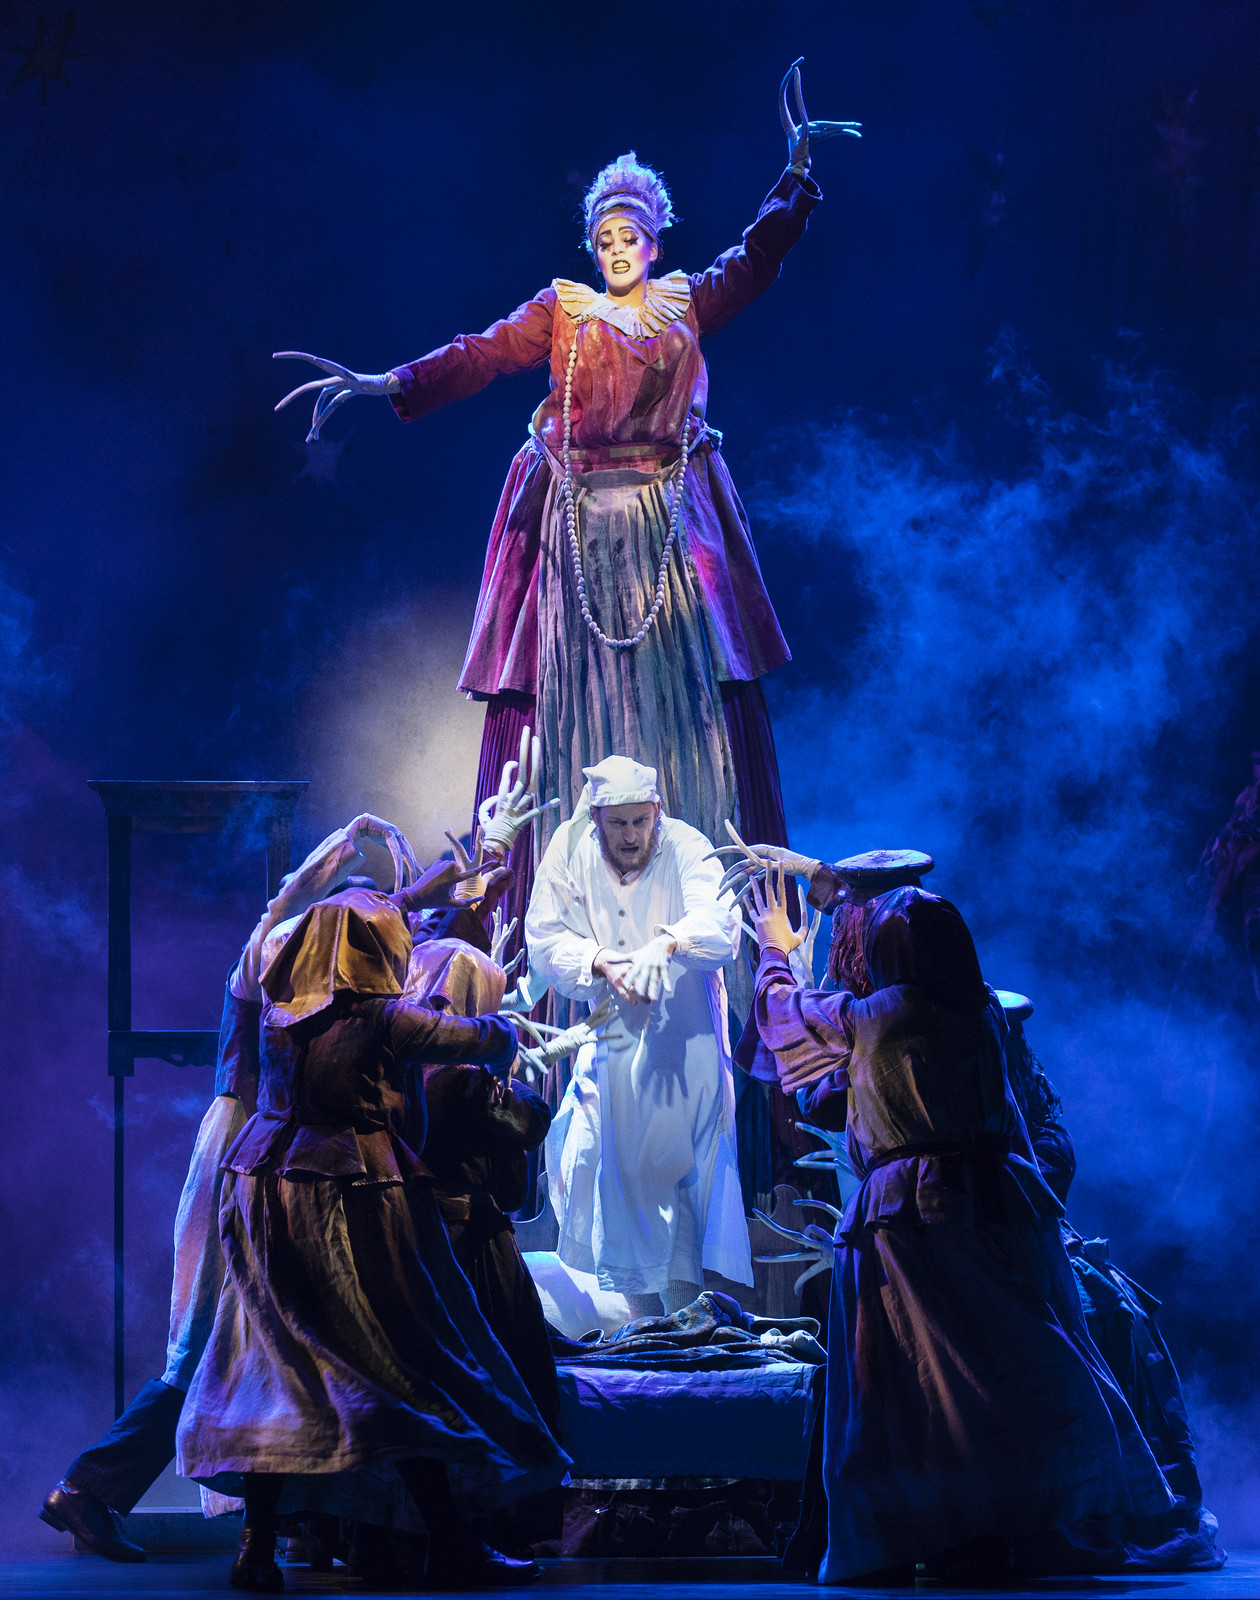 Photo: Joan Marcus || Wading in Big Shoes - Broadway in Detroit: 'Fiddler on the Roof' at the Fisher Theatre March 10 - 15, 2020